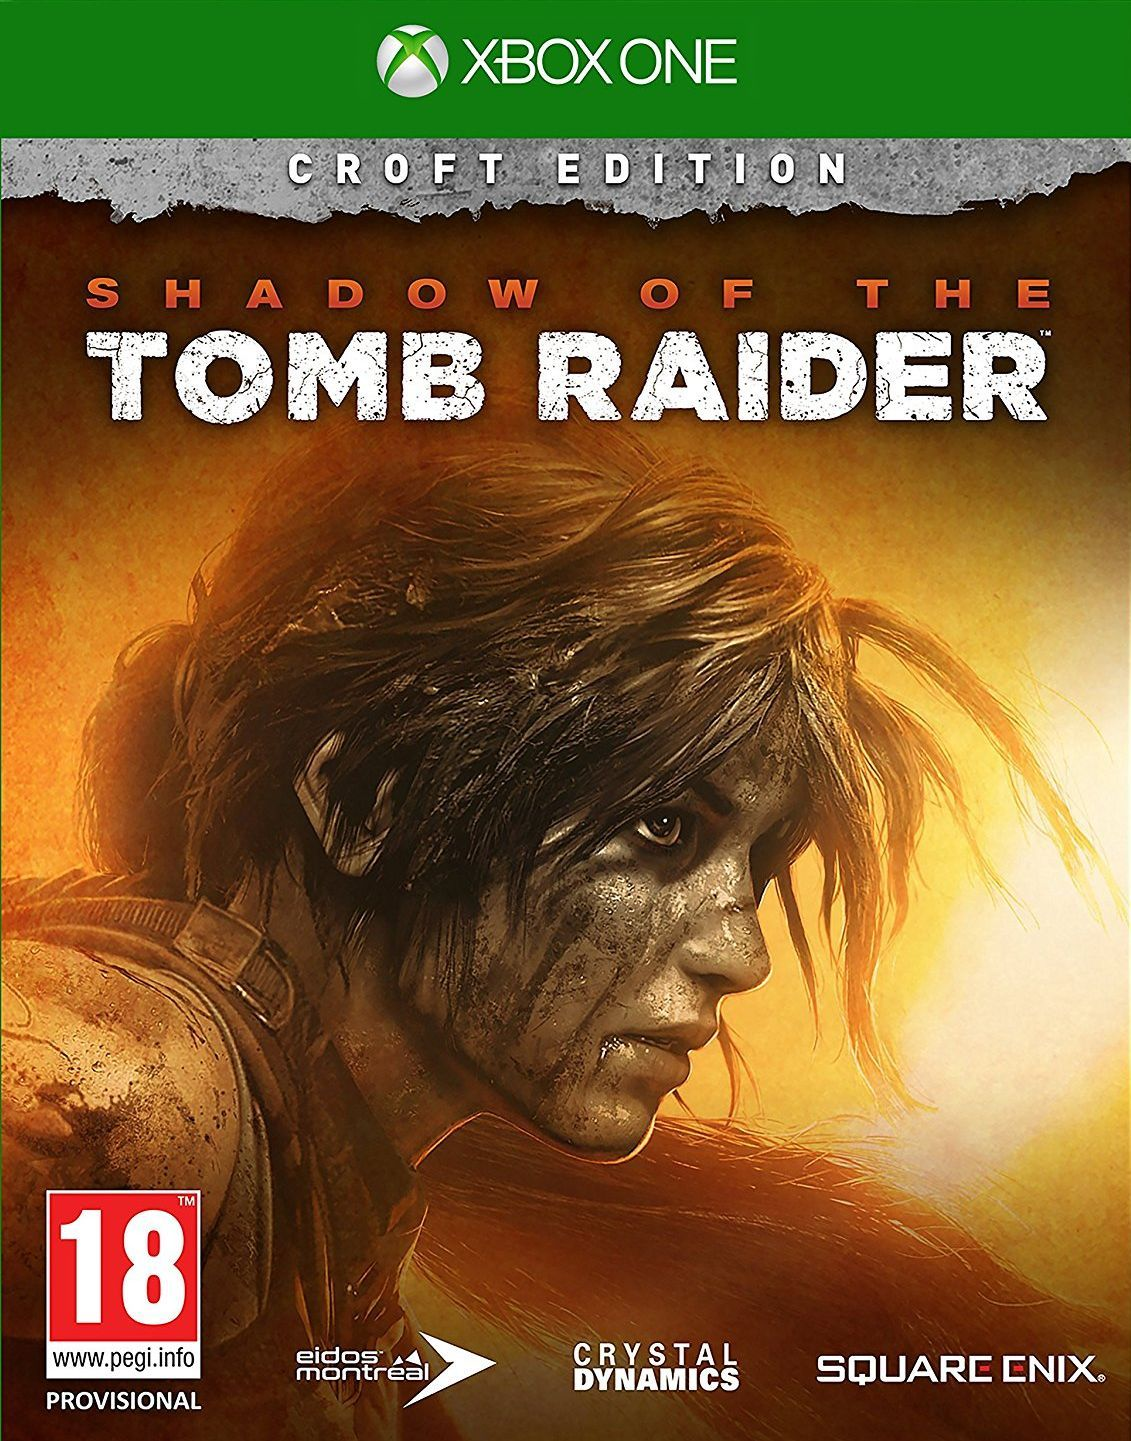 Shadow Of The Tomb Raider Croft Edition (Xbox One) - 1